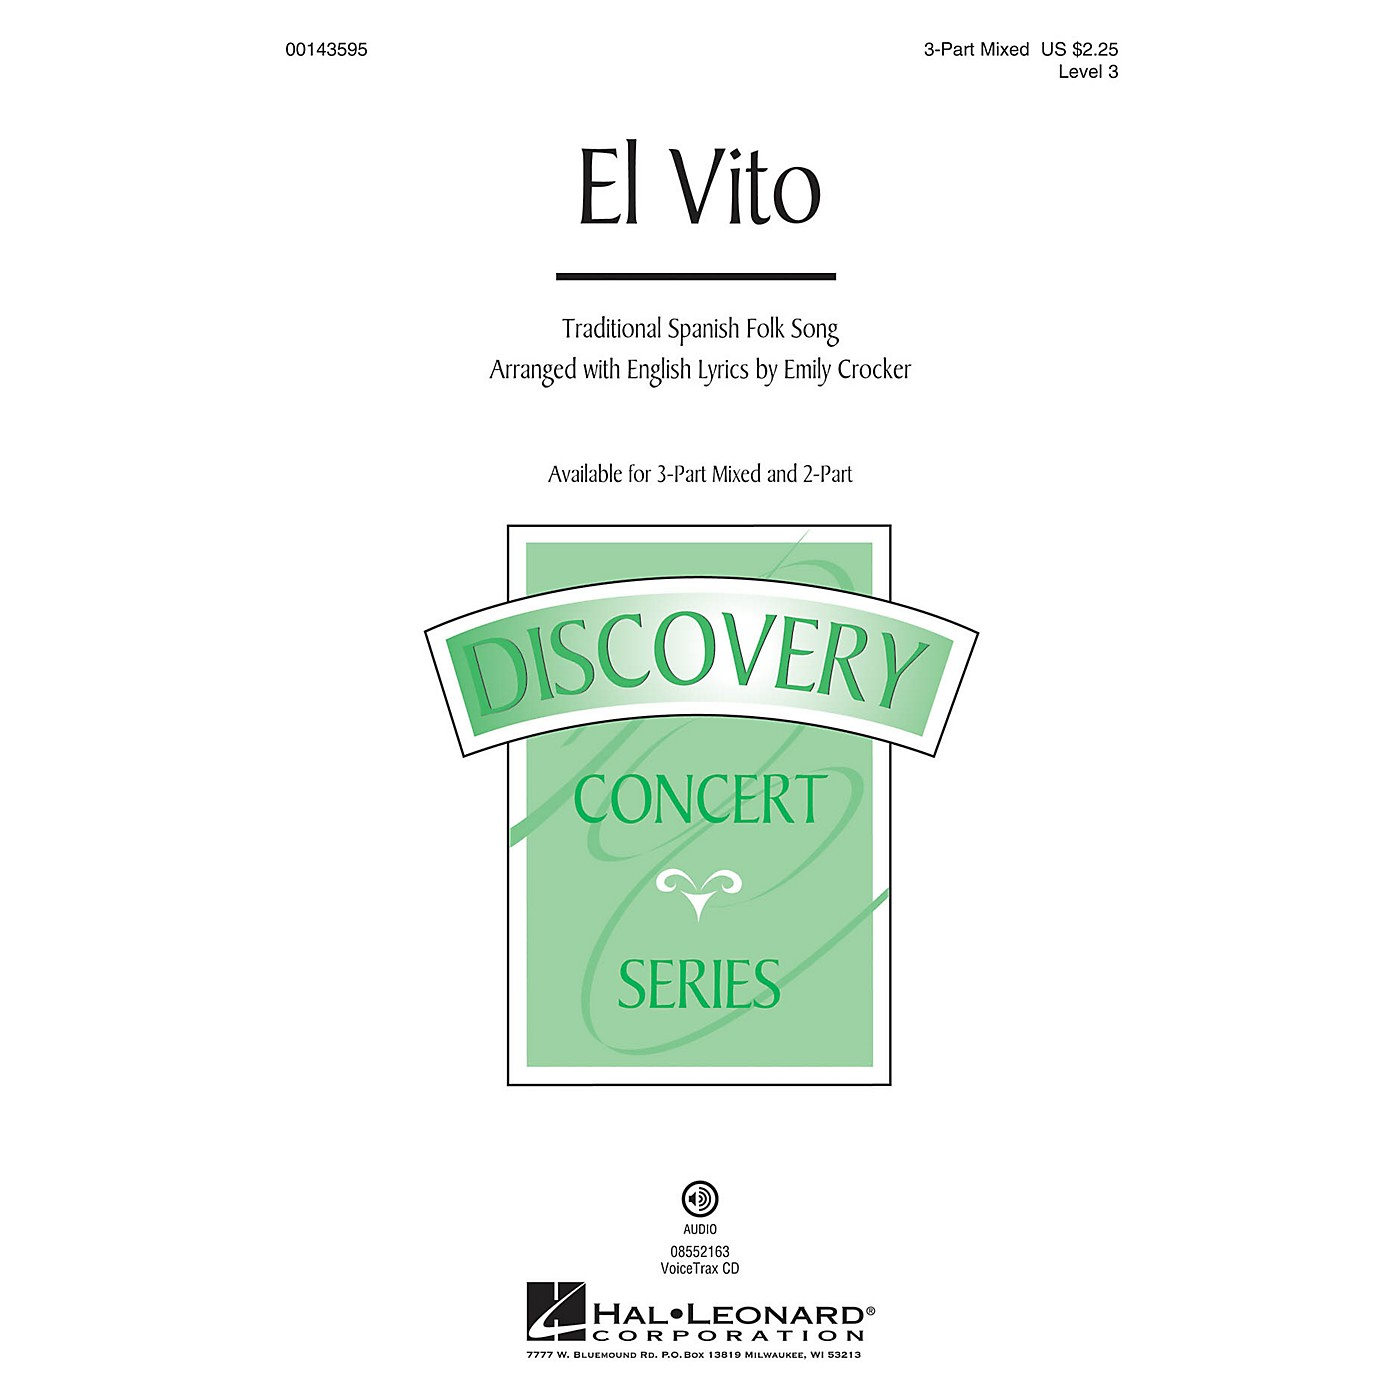 Hal Leonard El Vito (Discovery Level 3) 3-Part Mixed arranged by Emily Crocker thumbnail